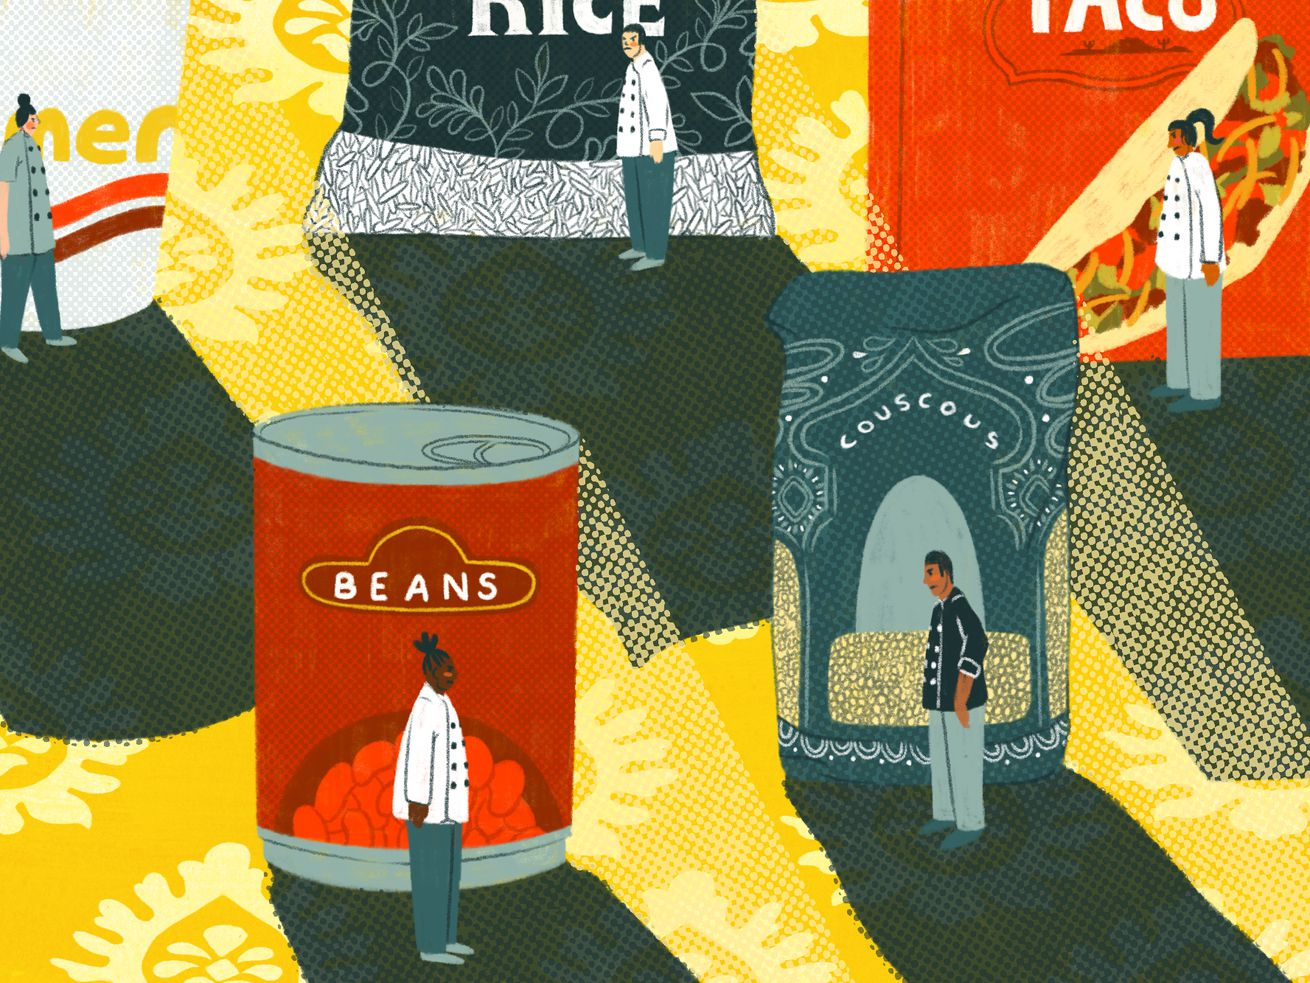 Small figures wearing chefs' coats stand in the shadows of packaged foods: ramen, beans, couscous, rice, and taco seasoning.